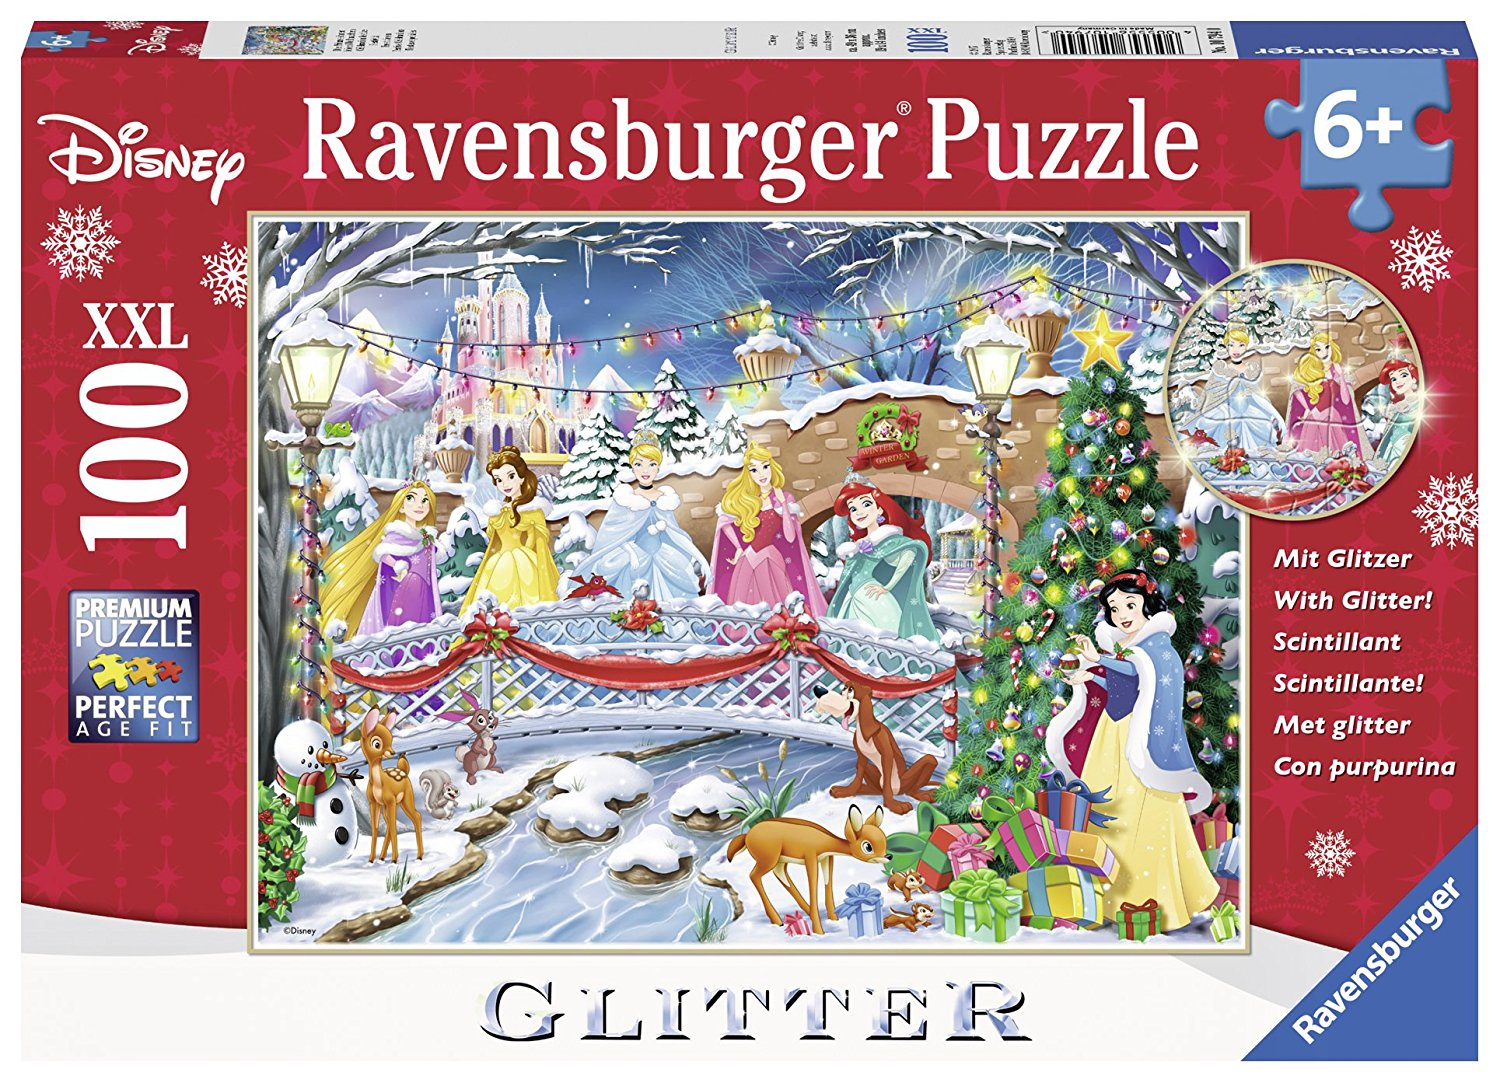 XXL Dreamy Kitten Puzzle for 6+, 100 piece childs age 6+ puzzle By Ravensburger by